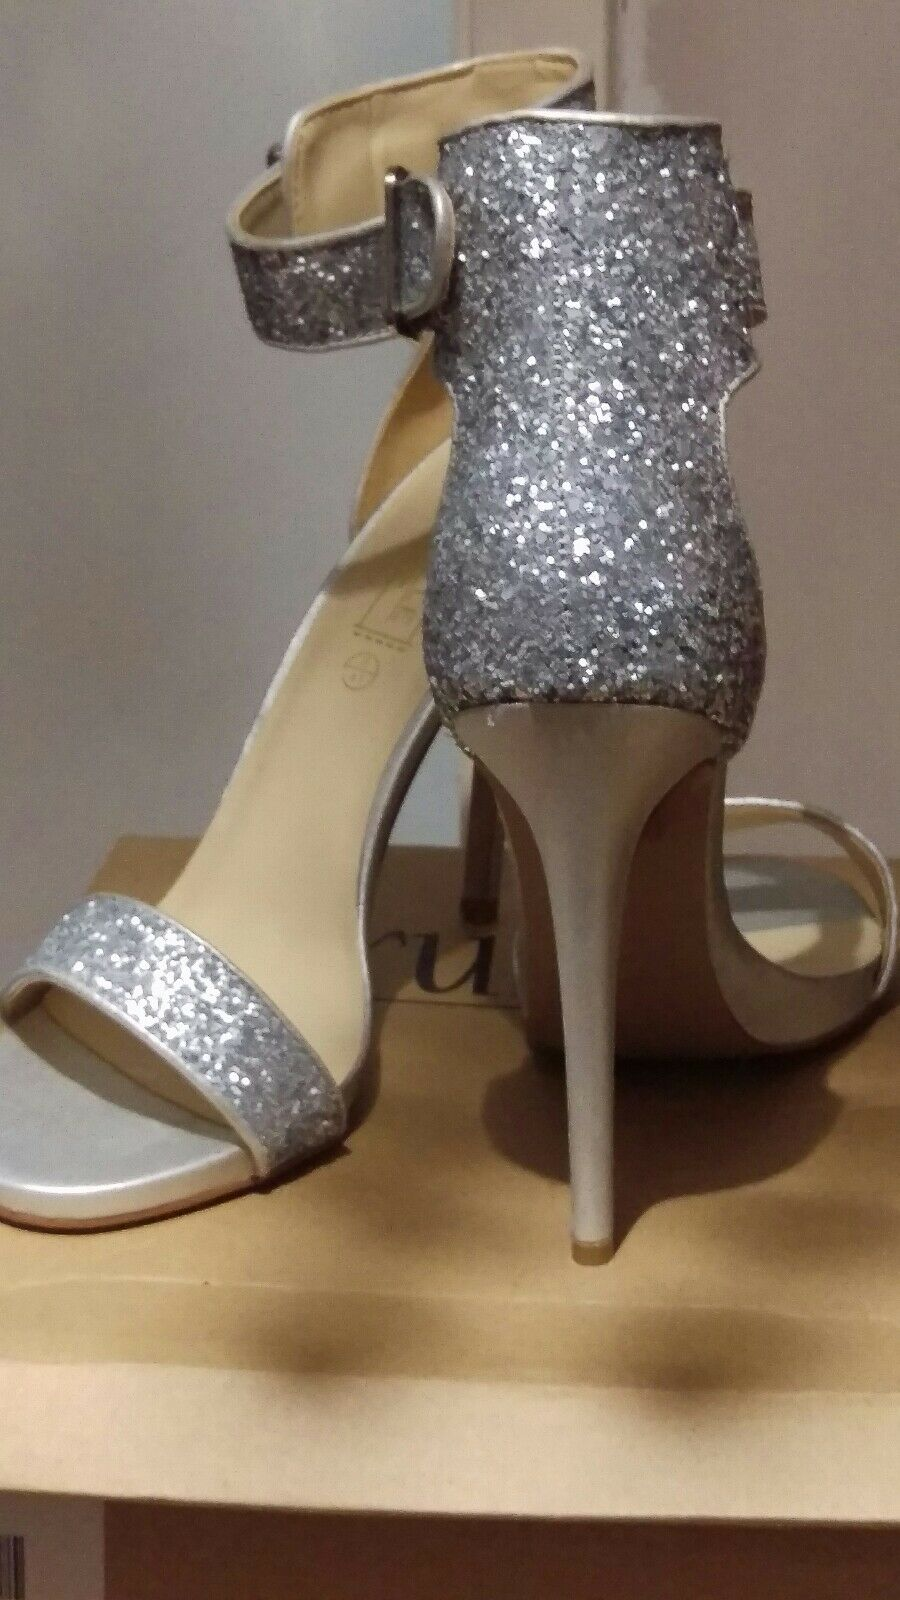 Silver Glitter Ankle Strap Heeled Sandals UK Size 8 41 Brand new